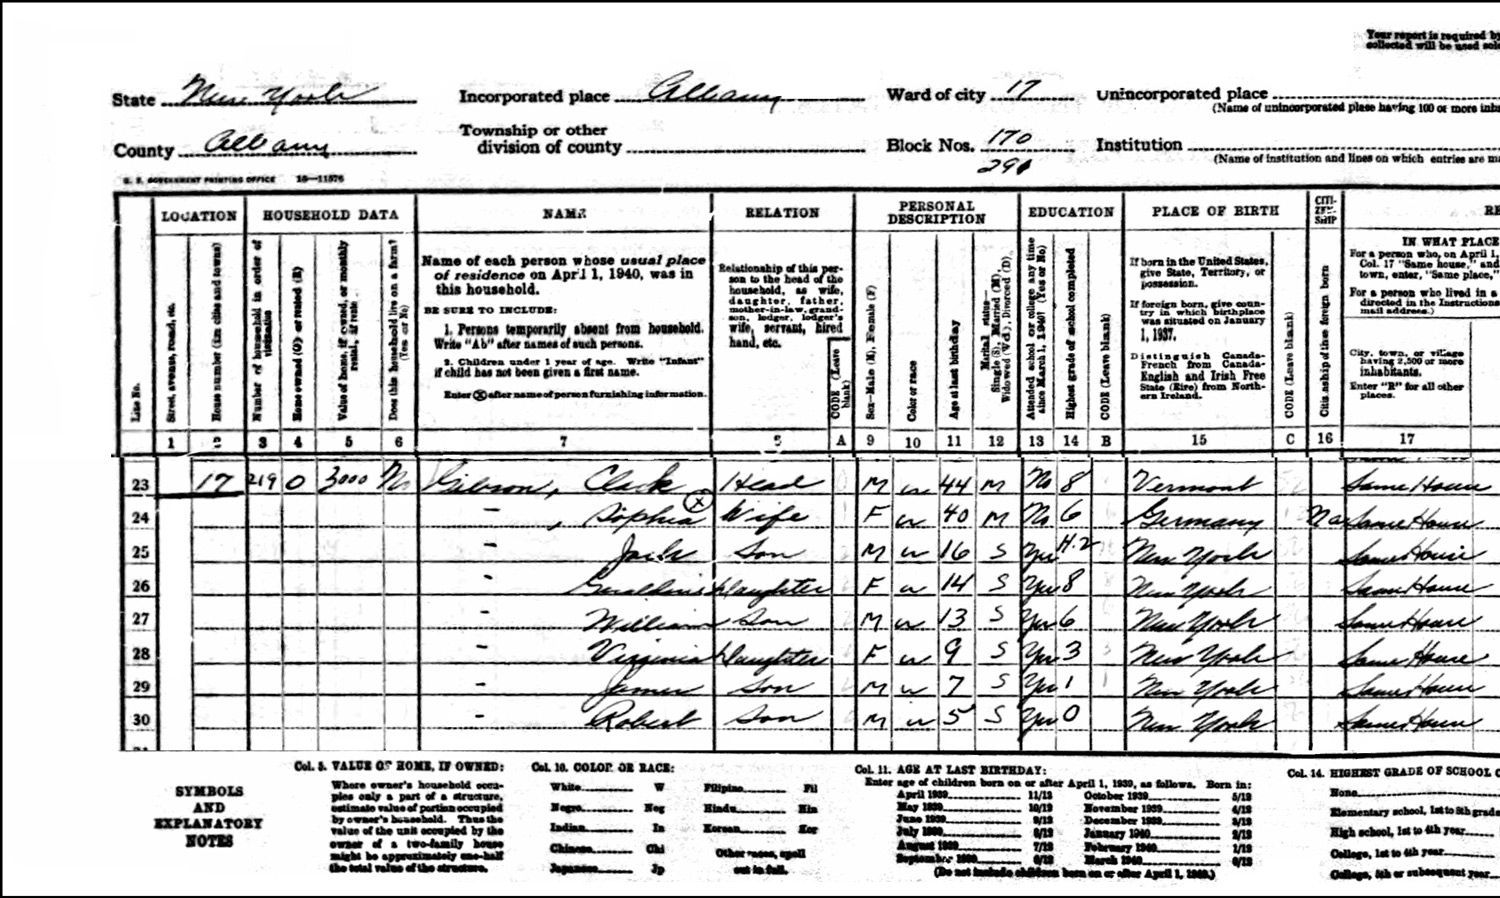 1940 US Federal Census Record for the Clark Gibson Family (Left)